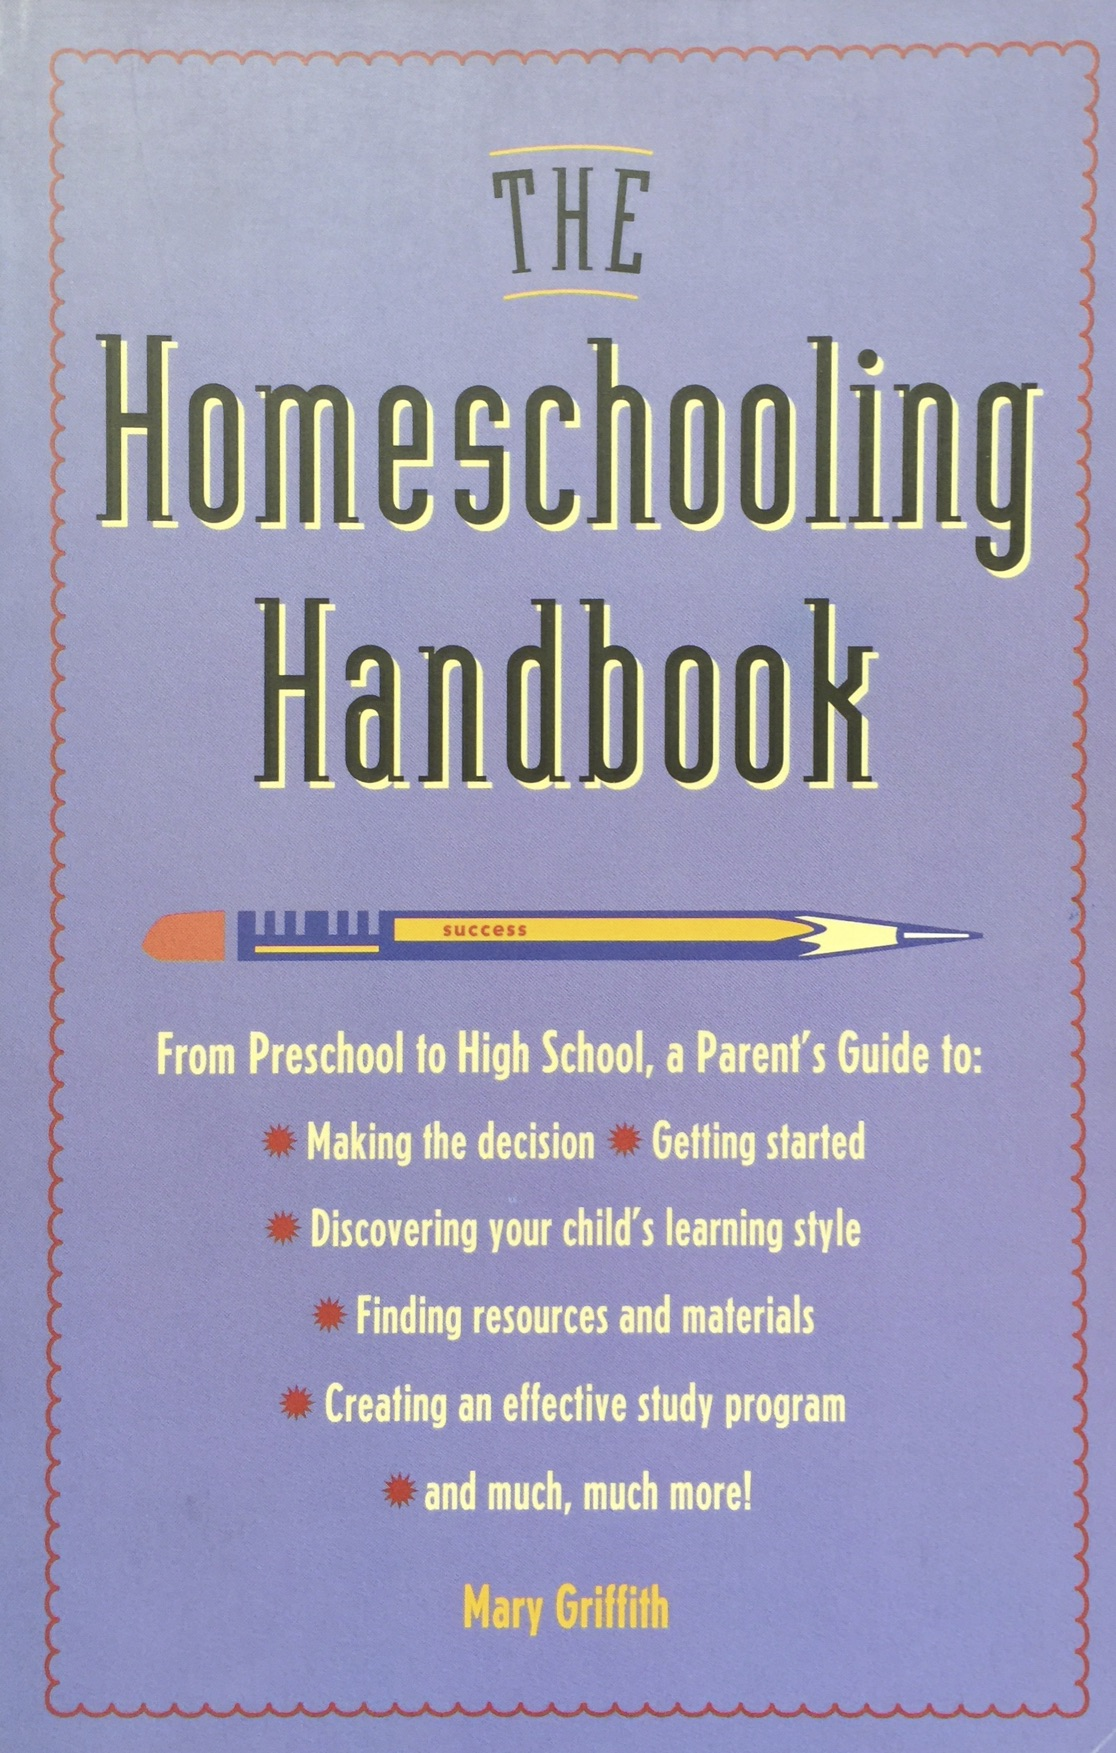 Mary Griffith on unschooling, homeschooling, and lifelong learning